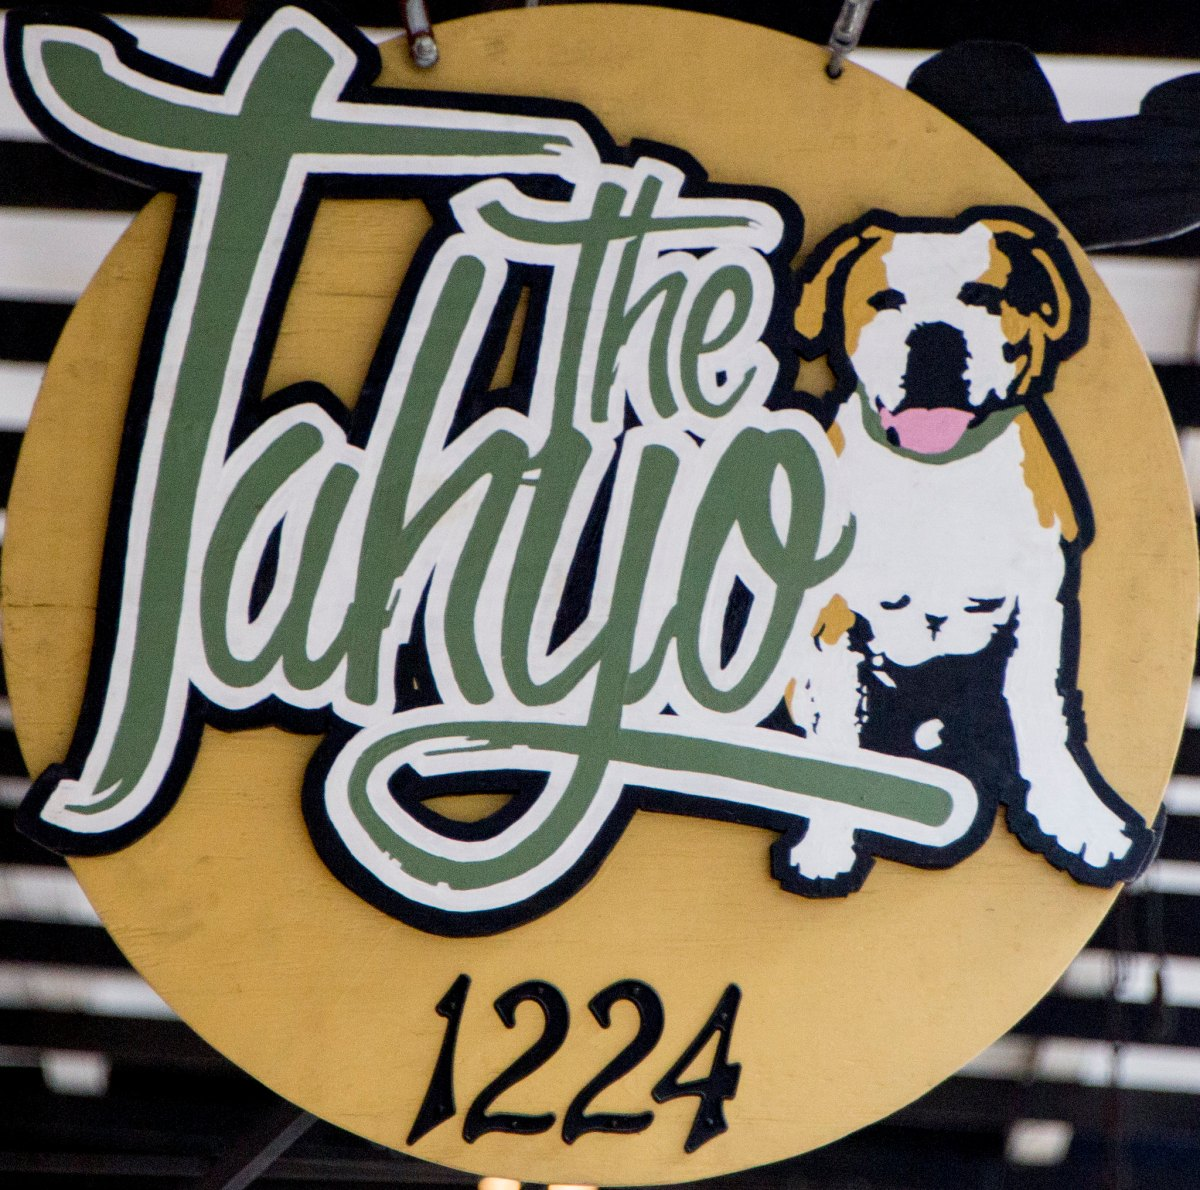 The Tahyo, 'Pit Bulls & Parolees' gift shop on lower Decatur Street, closes due to COVID-19 shutdown